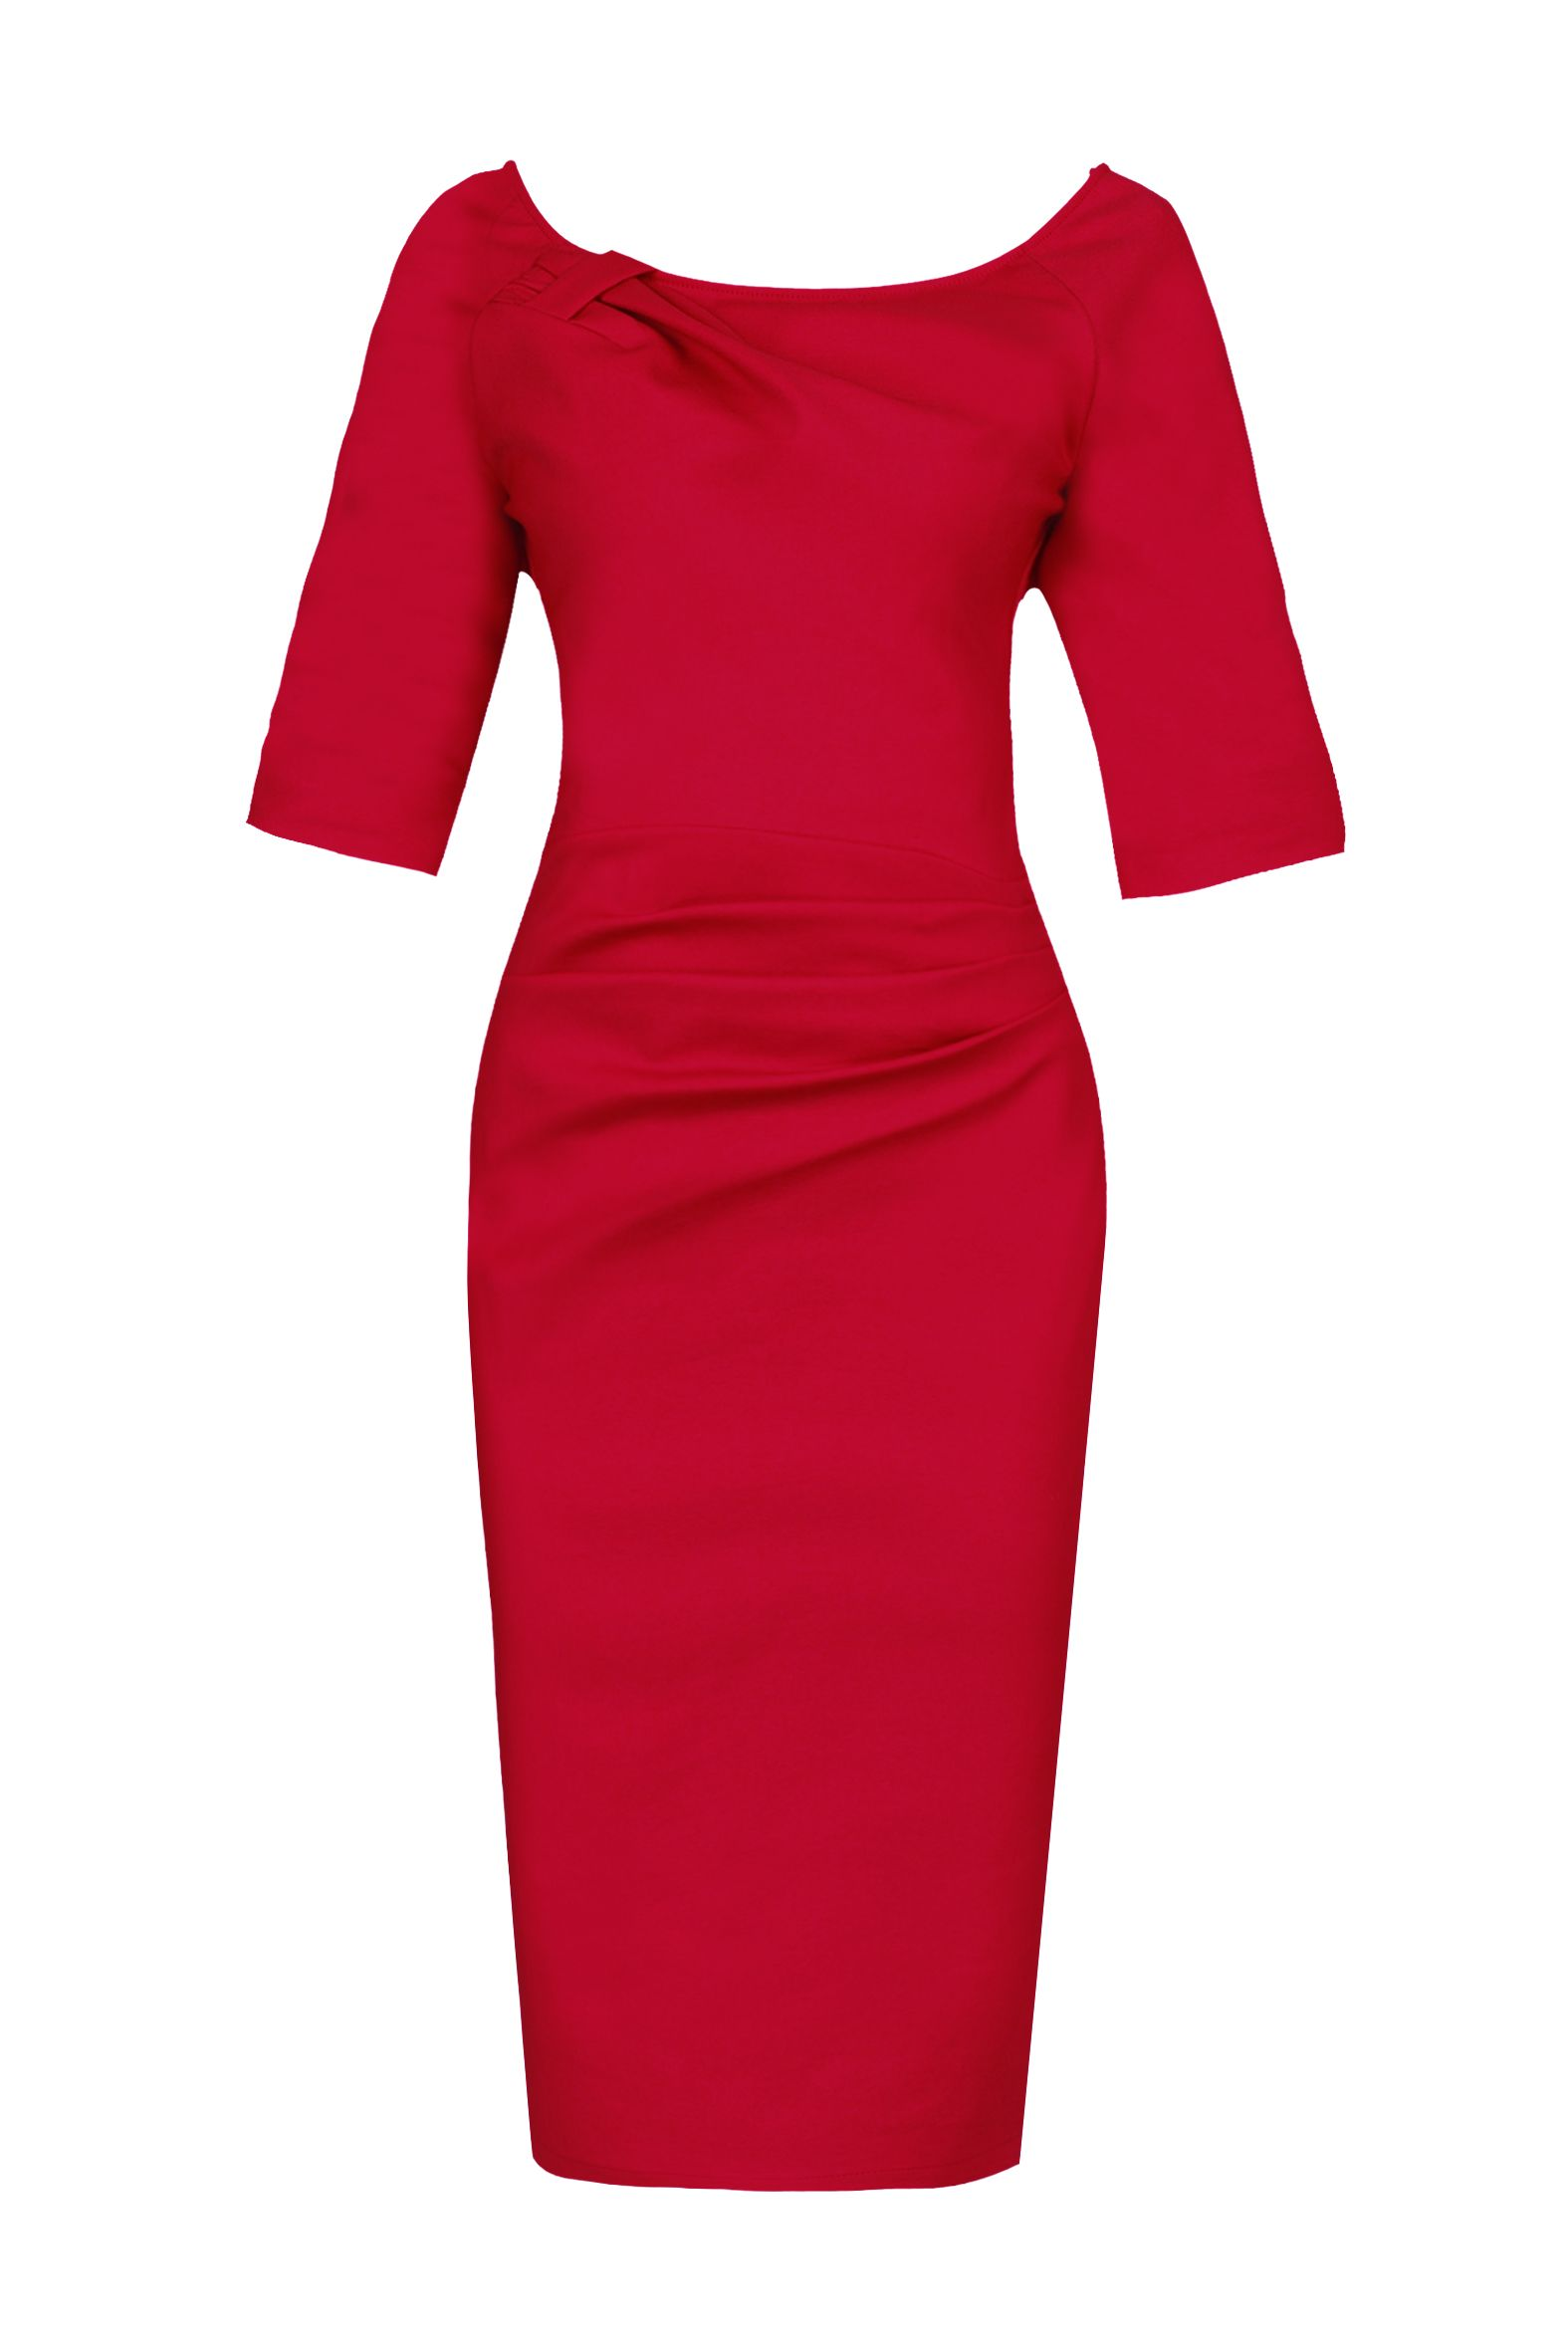 Jolie Moi 12 Sleeve Ruched Wiggle Dress, Red